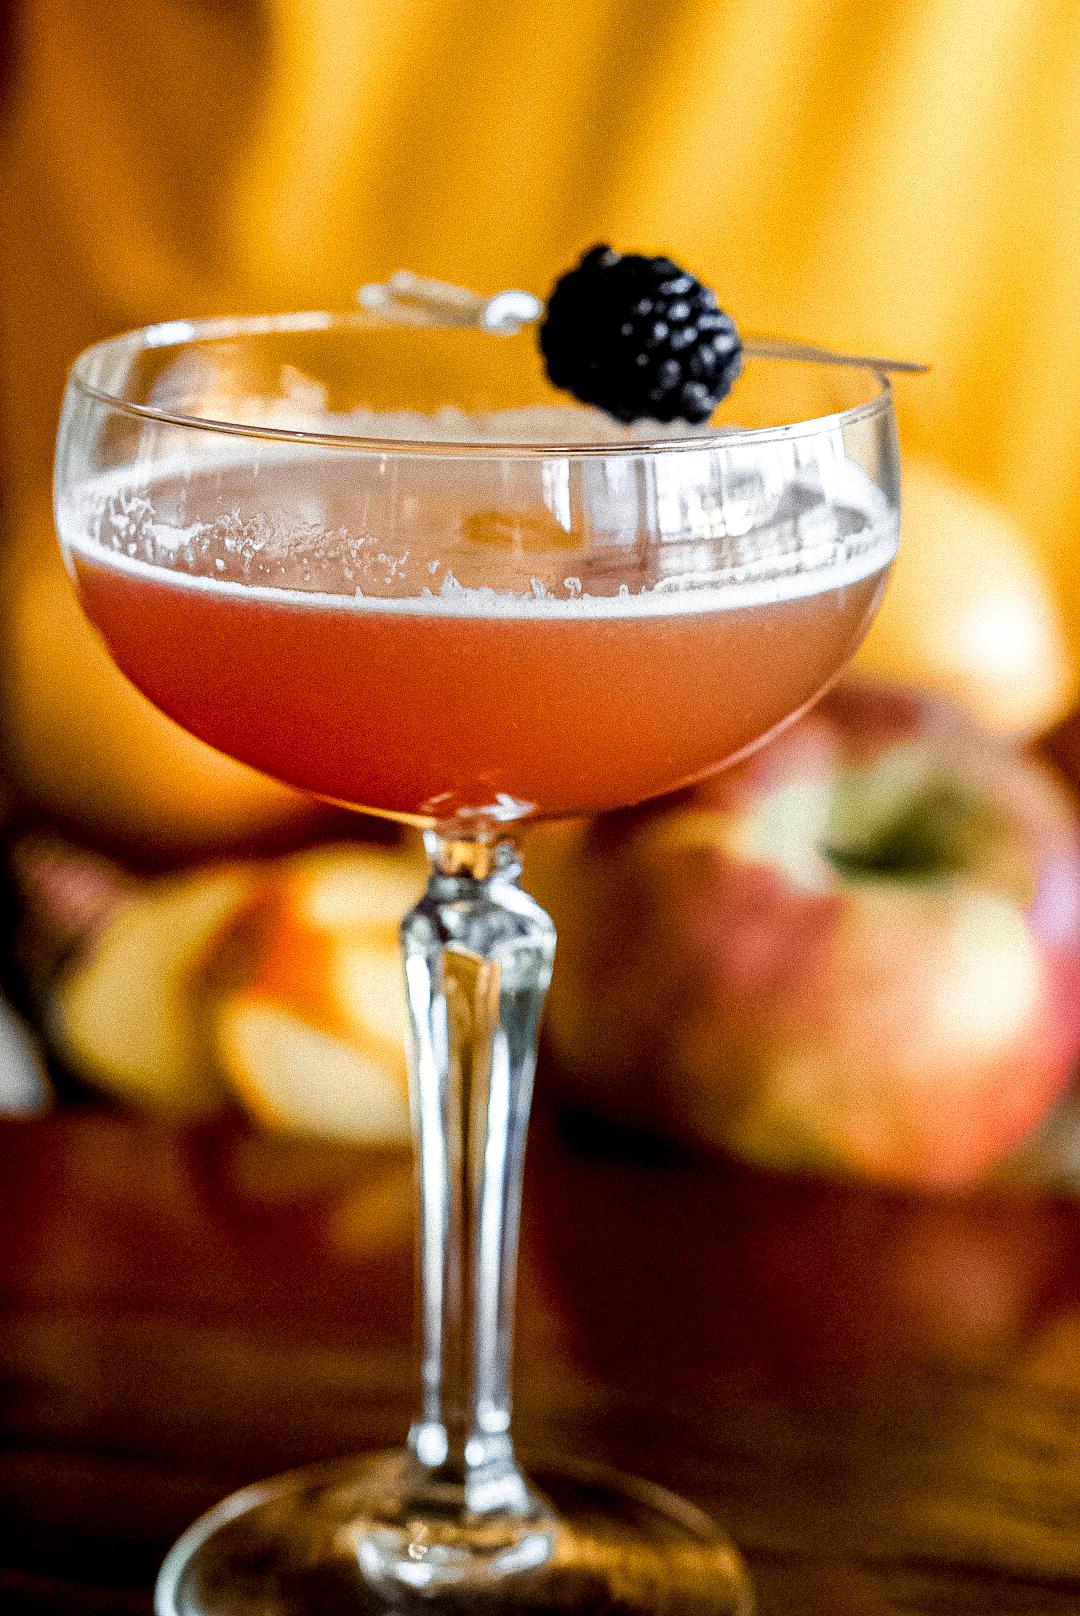 cocktails + mocktails - we press our own juice and make our own syrups. each drink is passionately crafted by hand. our menu changes with the new england season. don't see your drink? just ask us, friend!